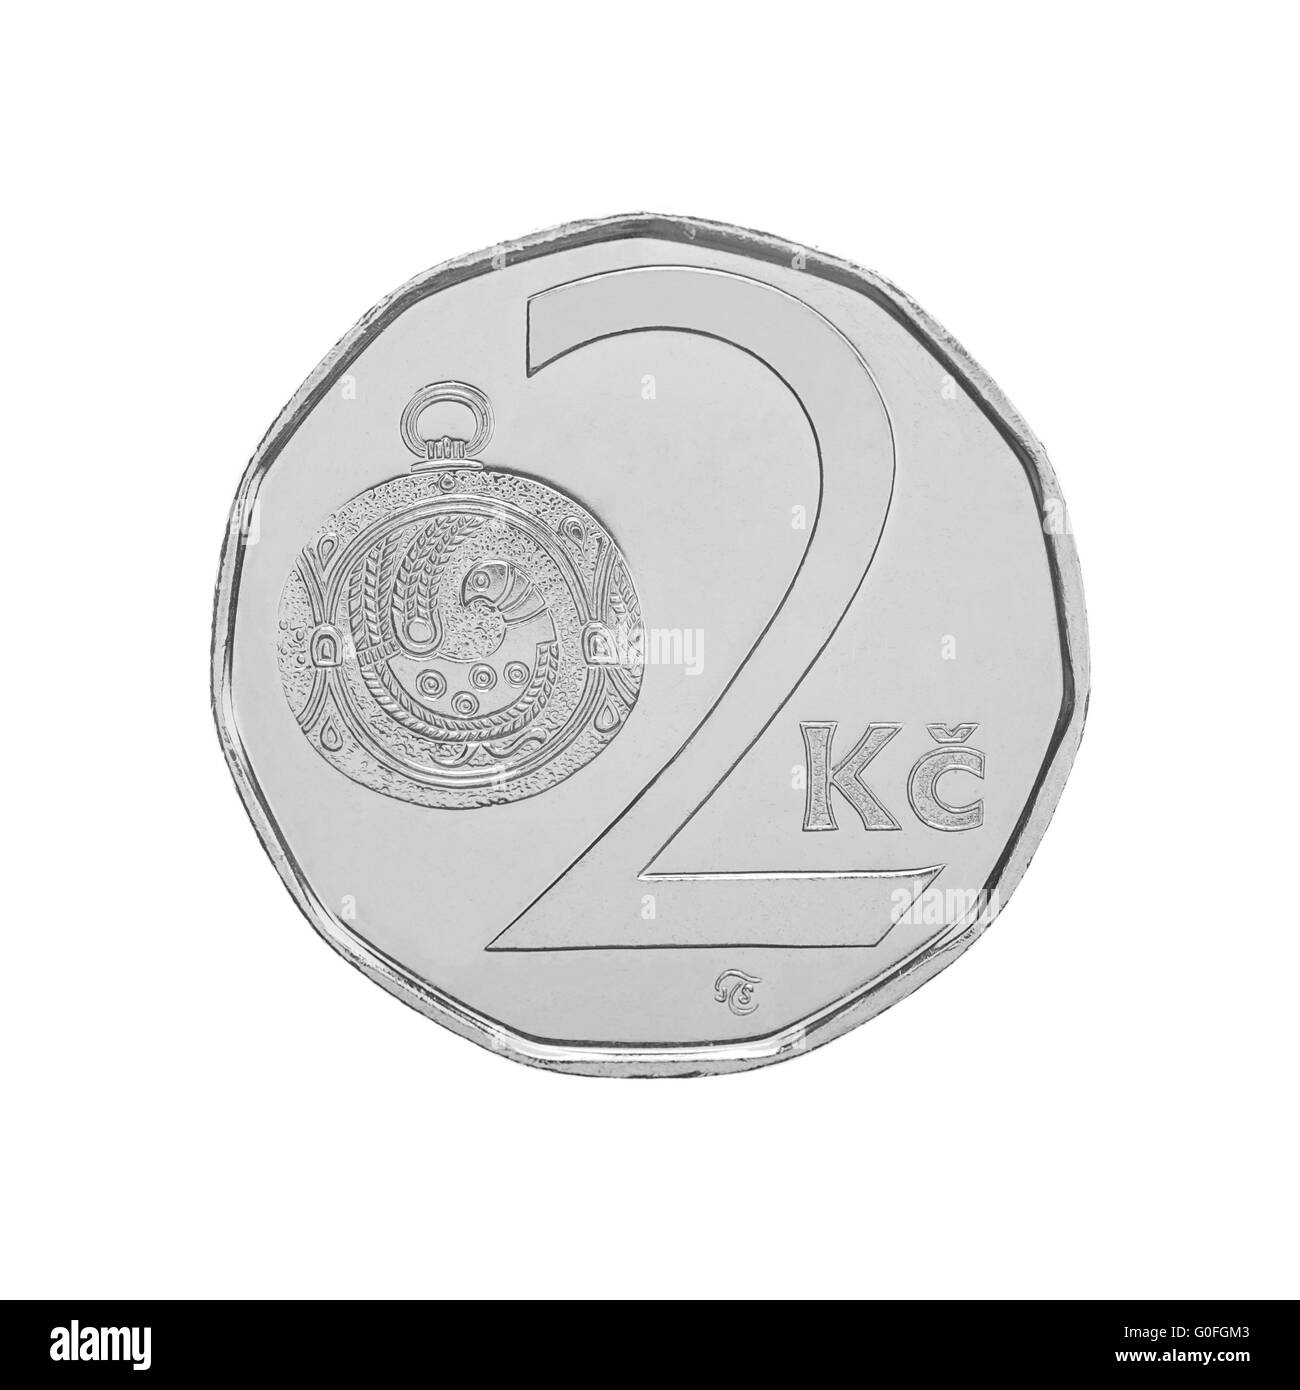 Two Czech Crowns coin - Stock Image